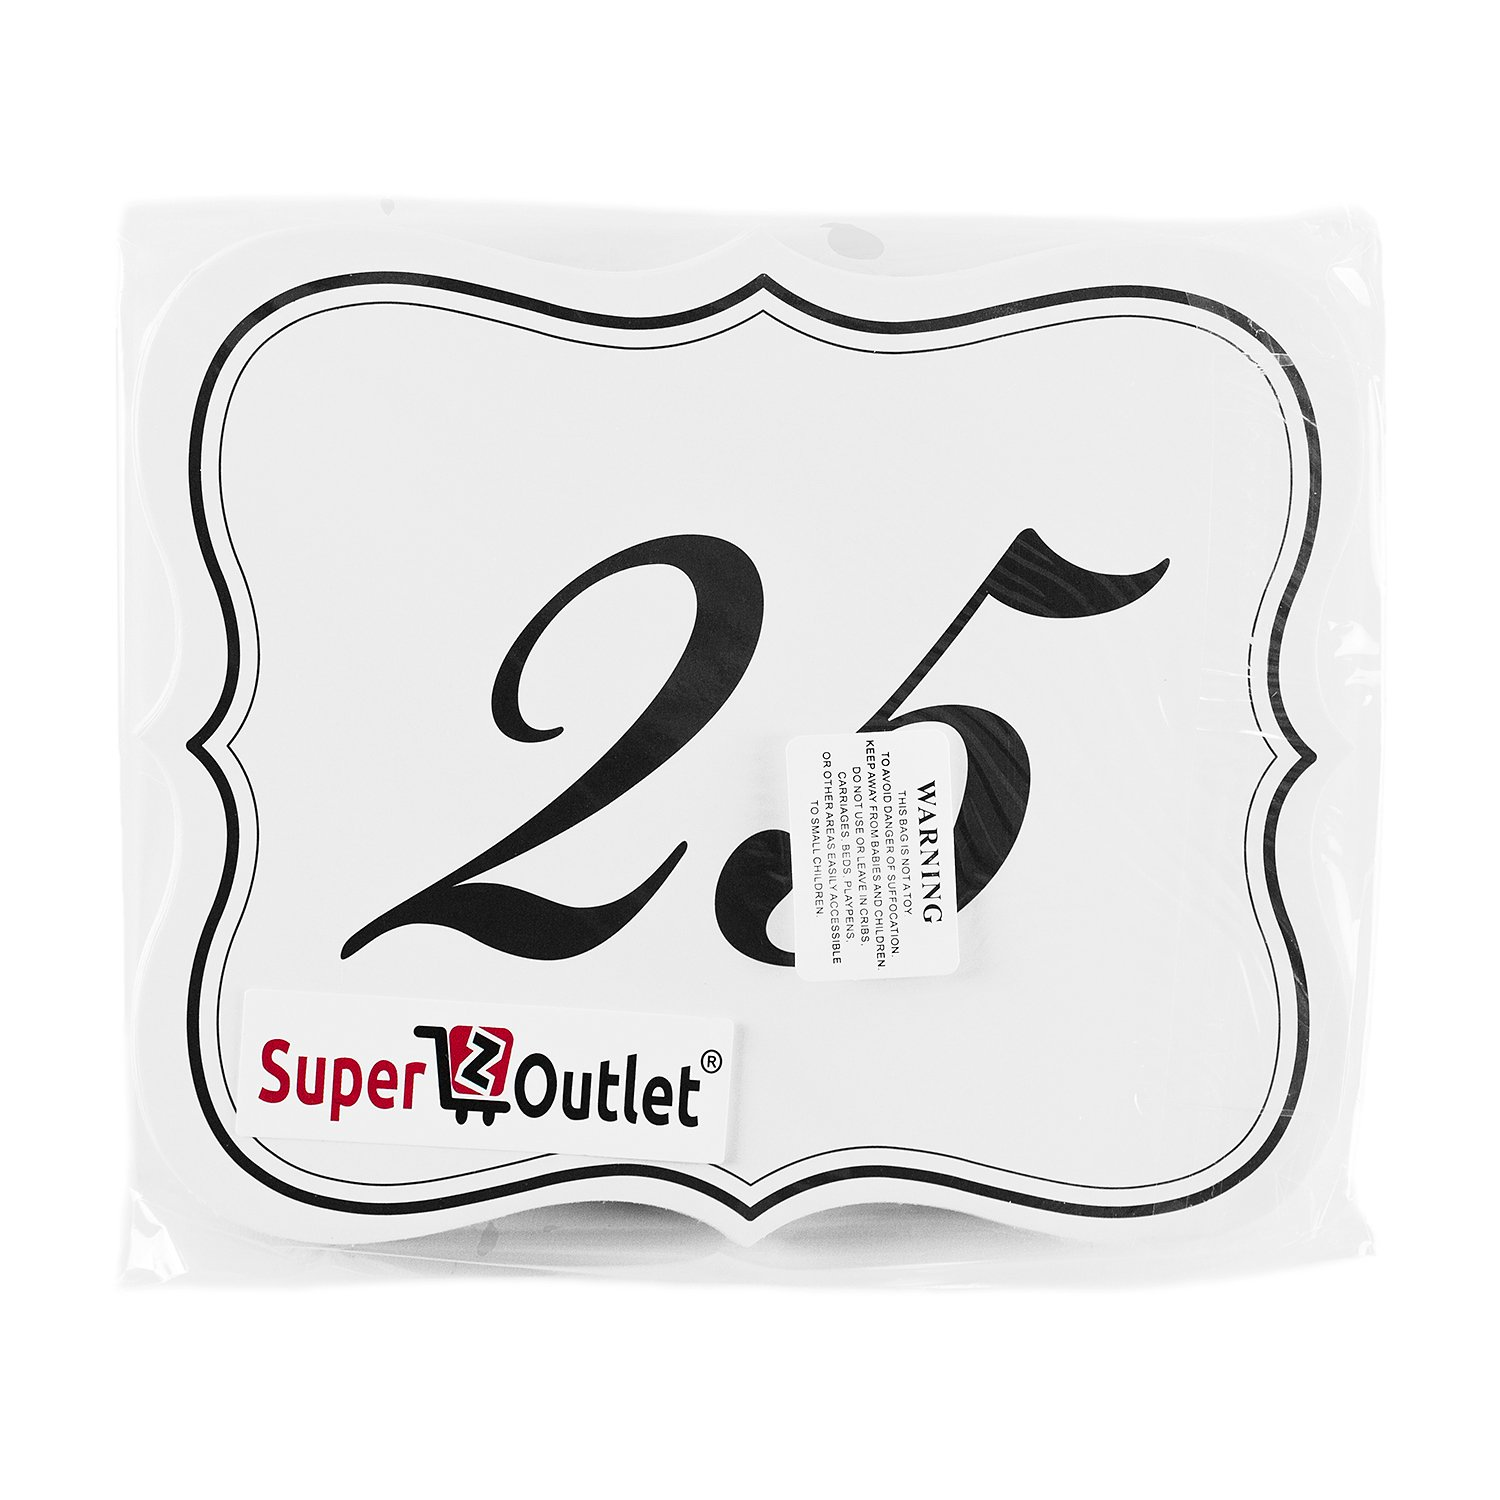 Numbers 1-25 Elegant Table Cards Wedding Reception David Tutera Inspired Scroll Edge Double Side for Party Event Organizing /& Decorating 6 x 5 Super Z Outlet